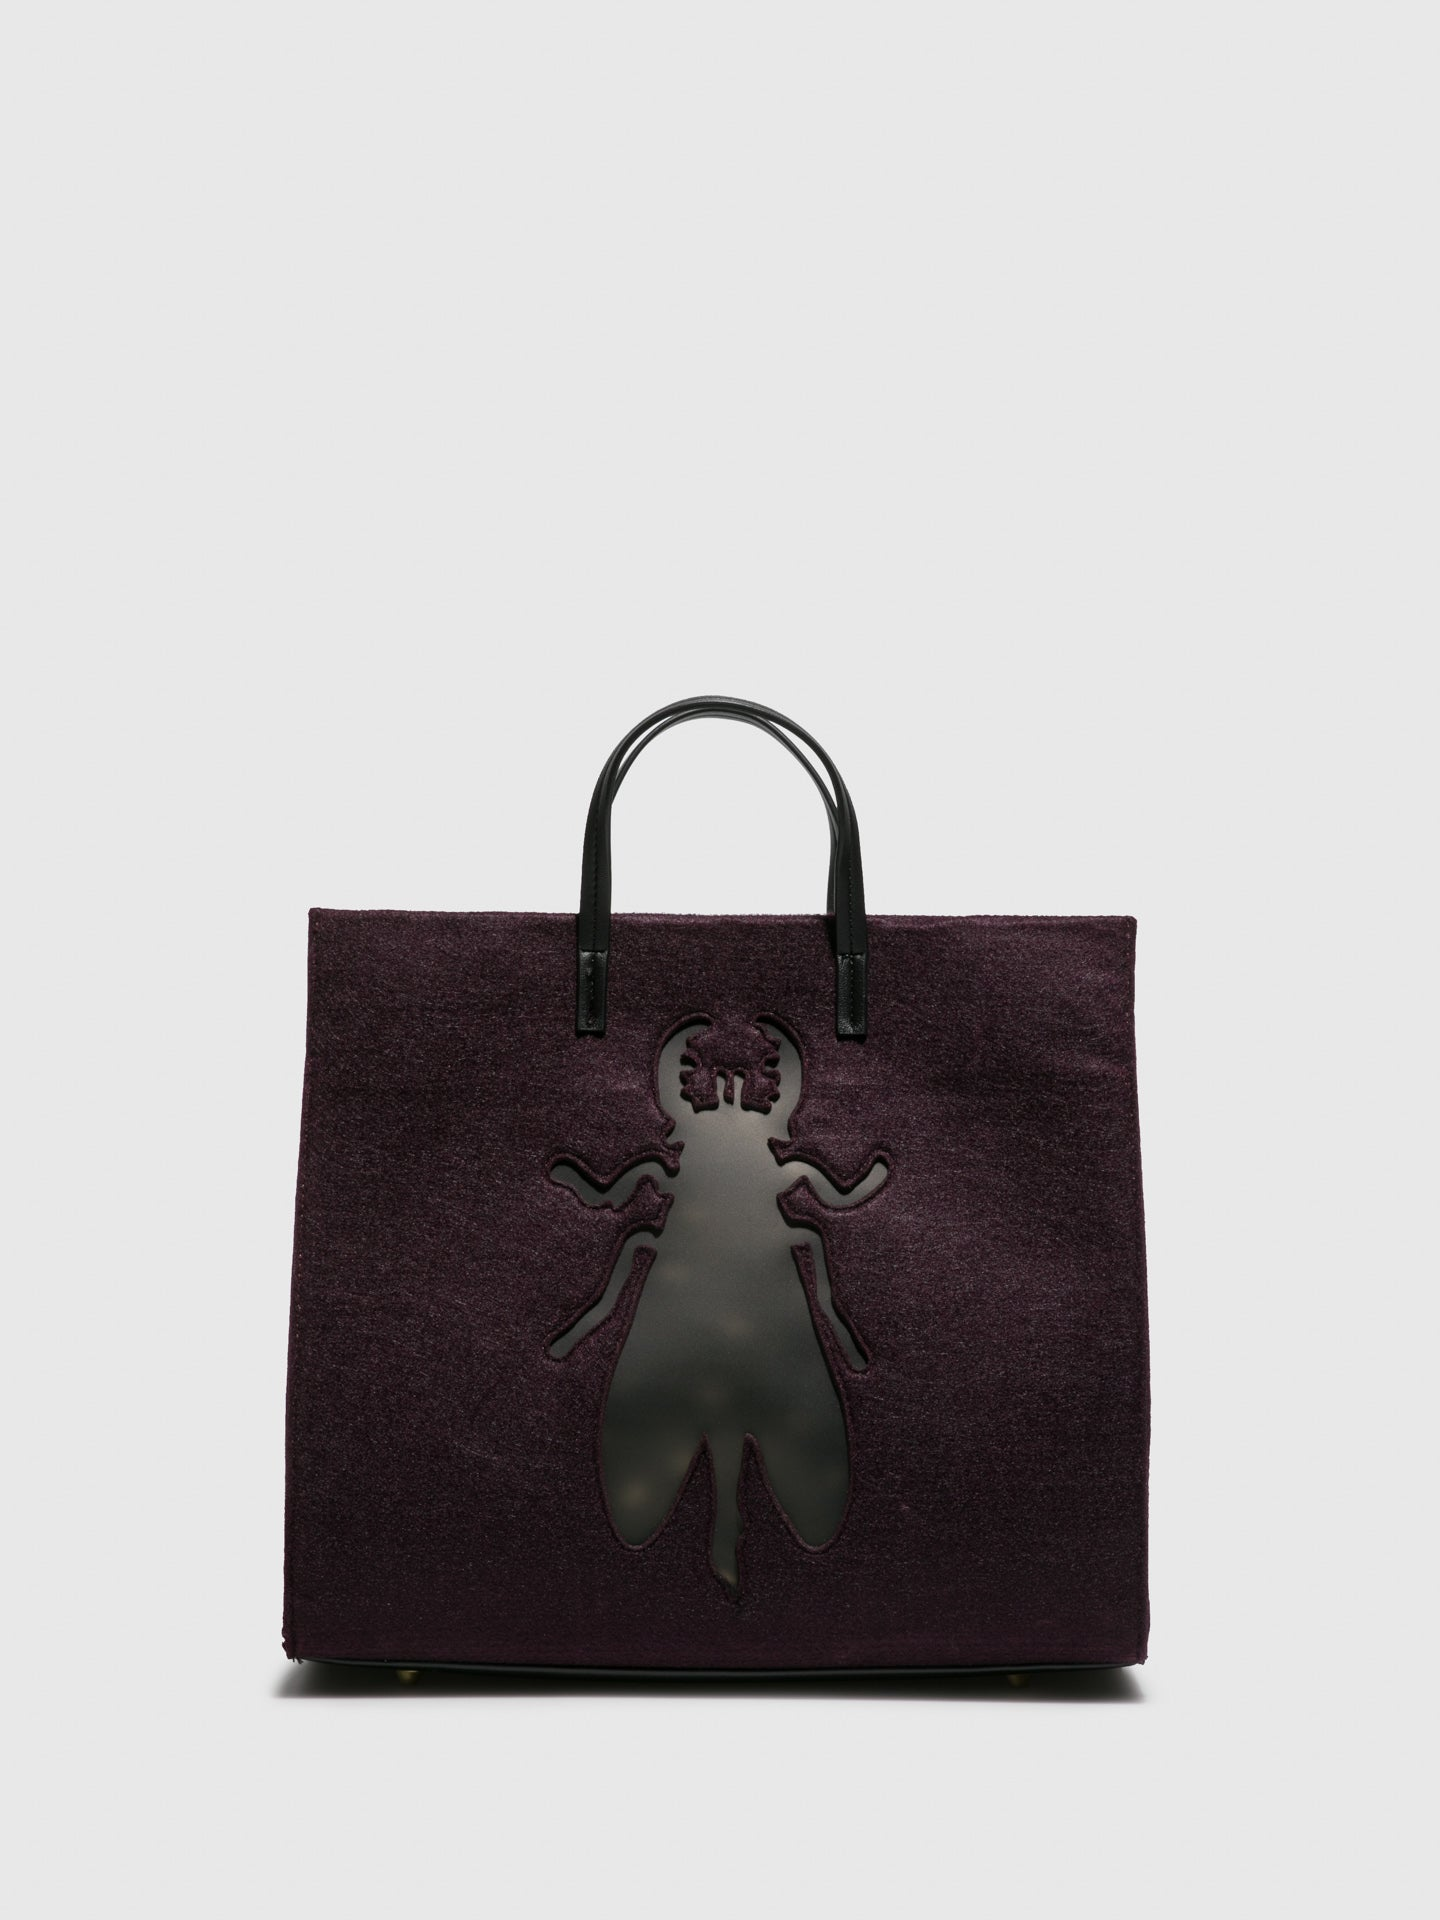 Fly London Tote Bags AMUR702FLY JULIET DK WINE